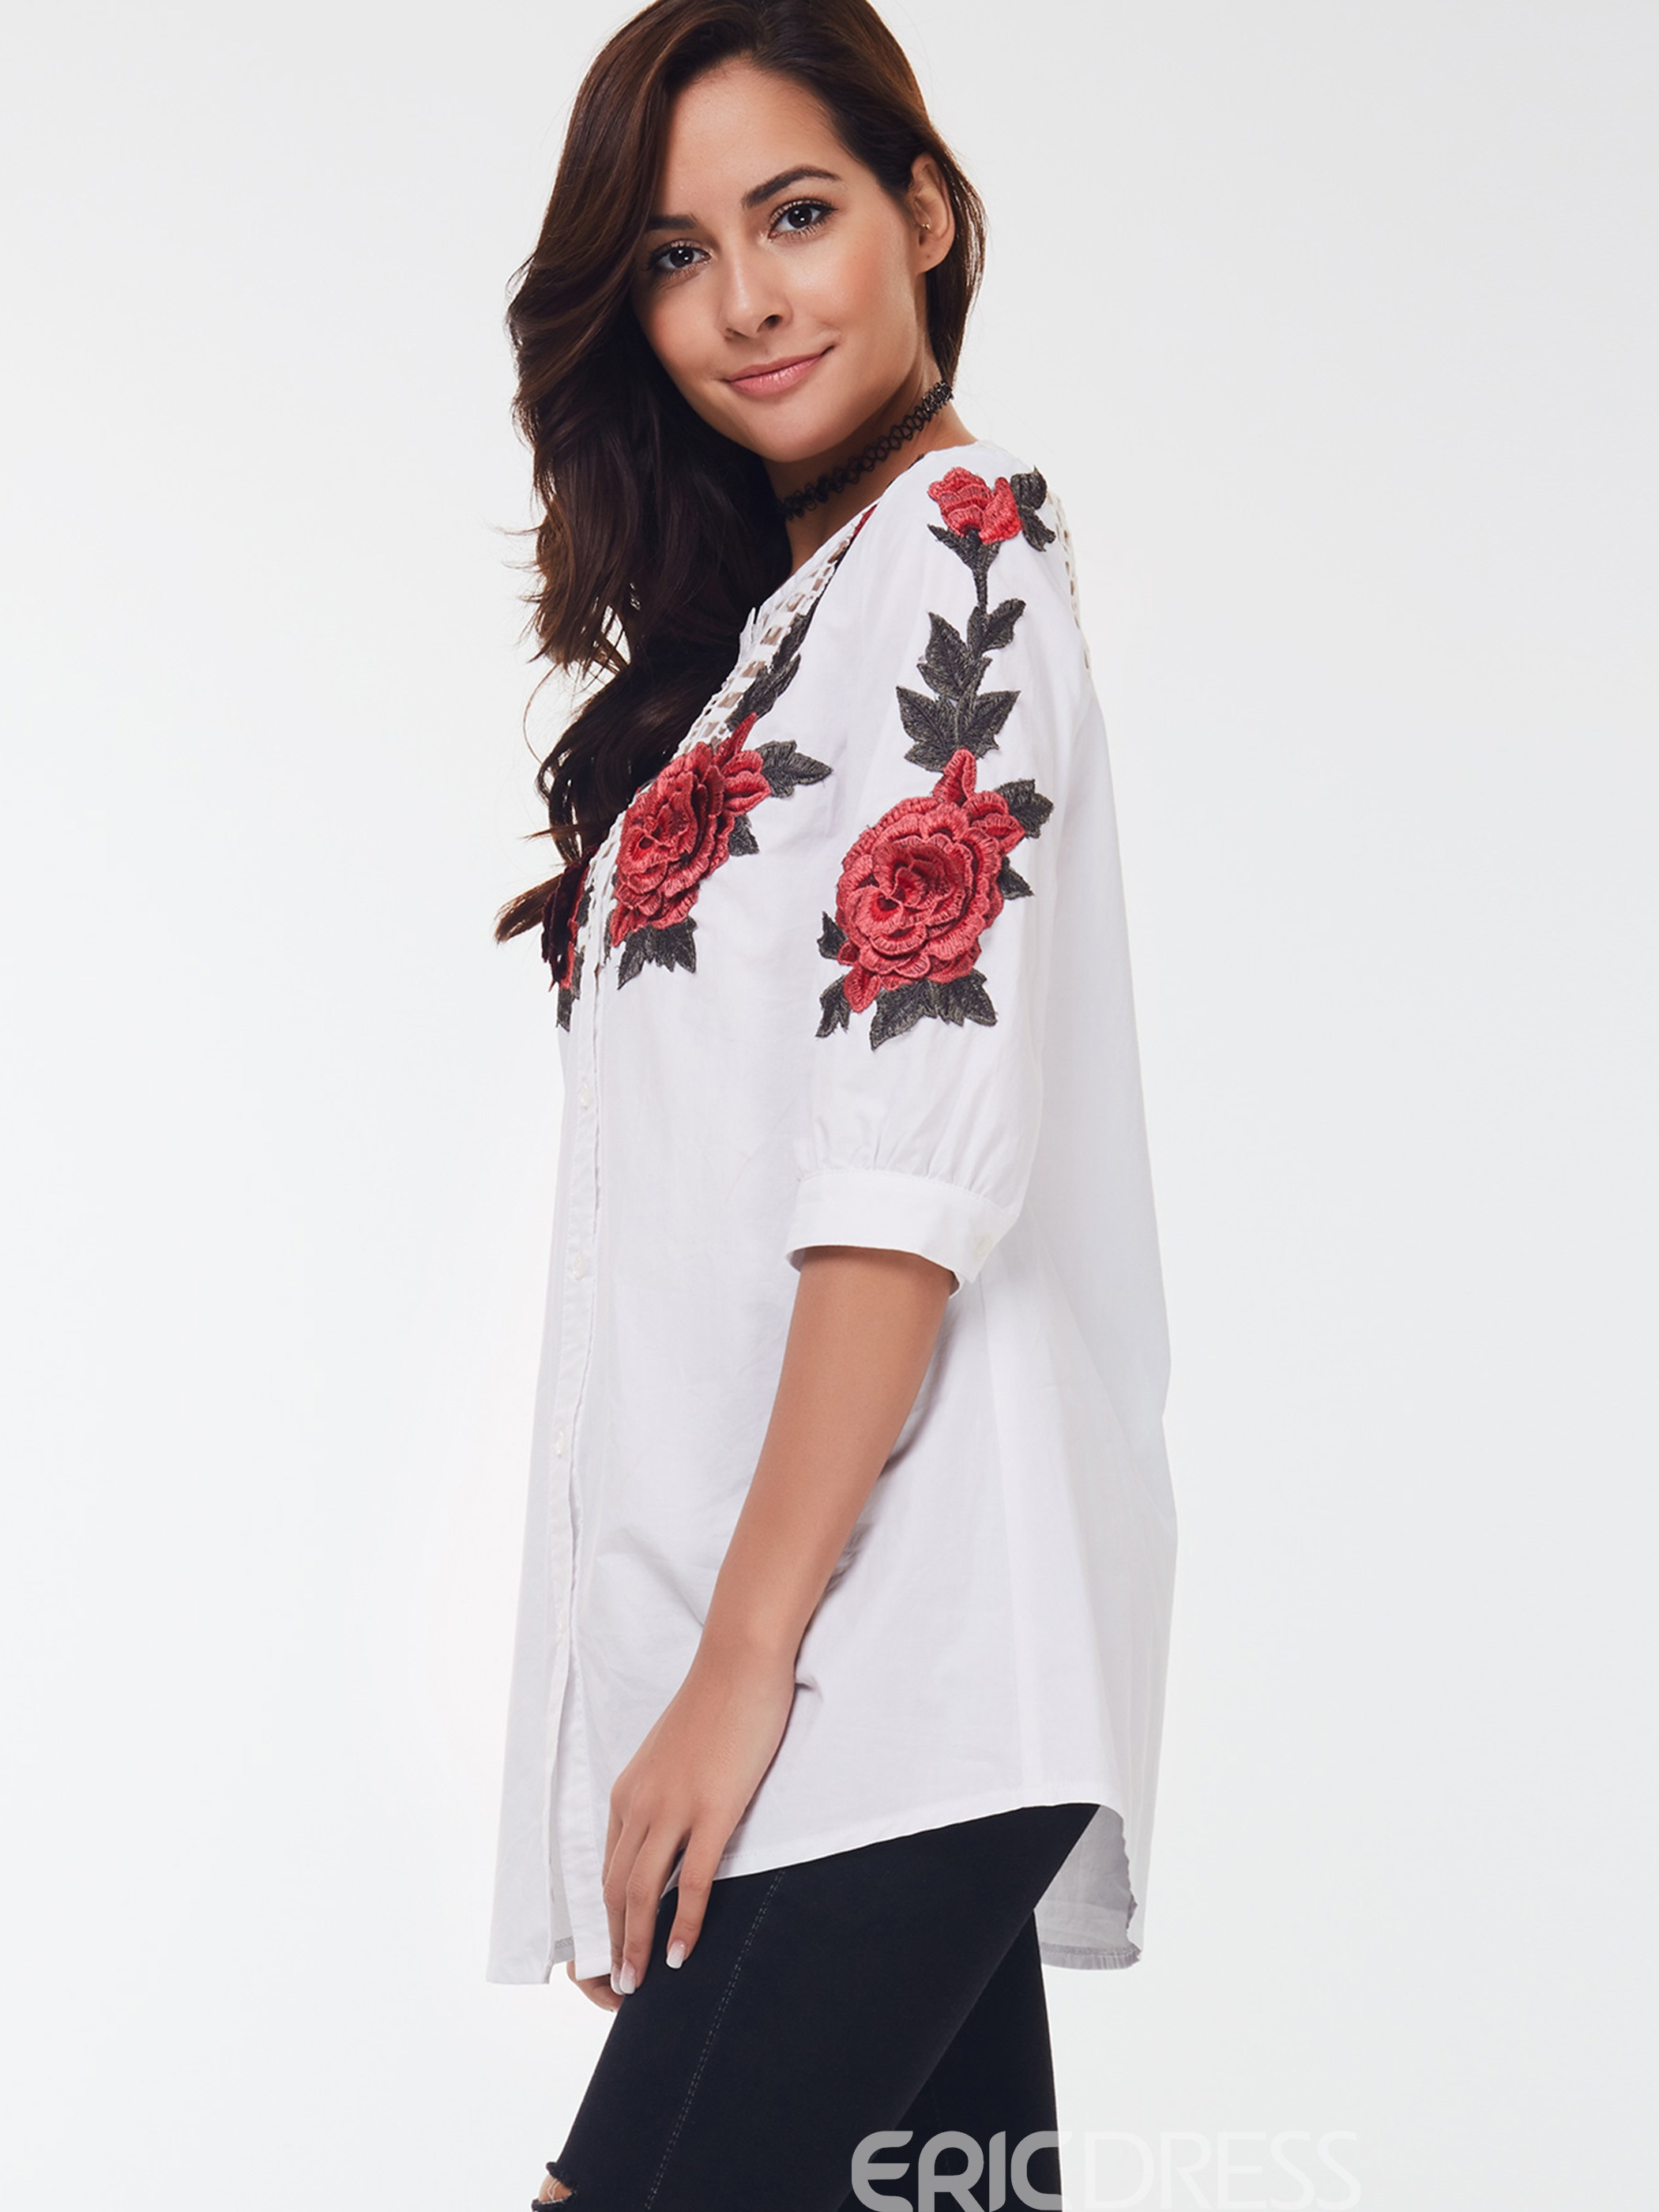 Ericdress Floral hohl bedruckte Bluse